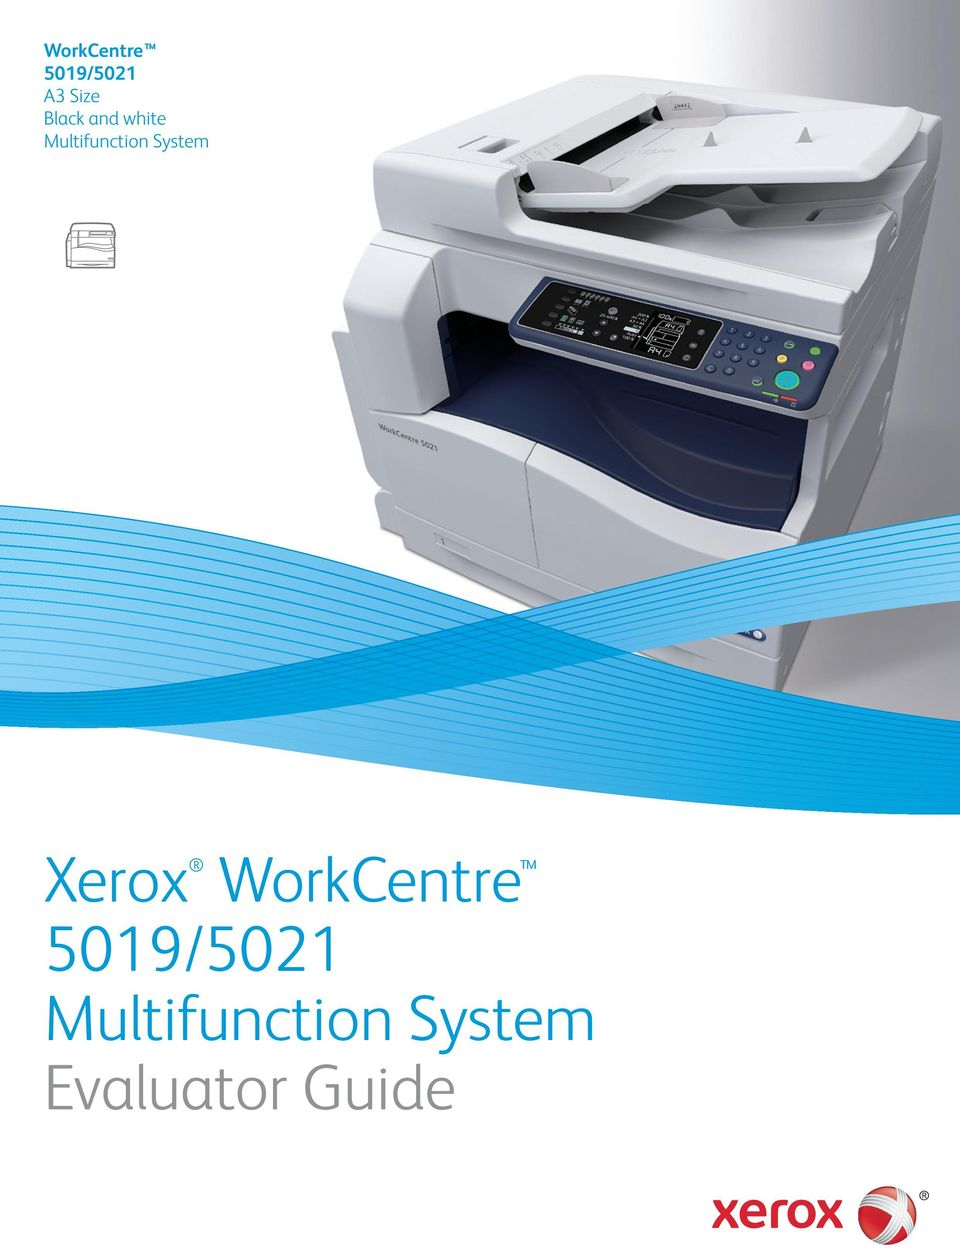 WorkCentre 5019/5021  A3 Size Black and white  Multifunction